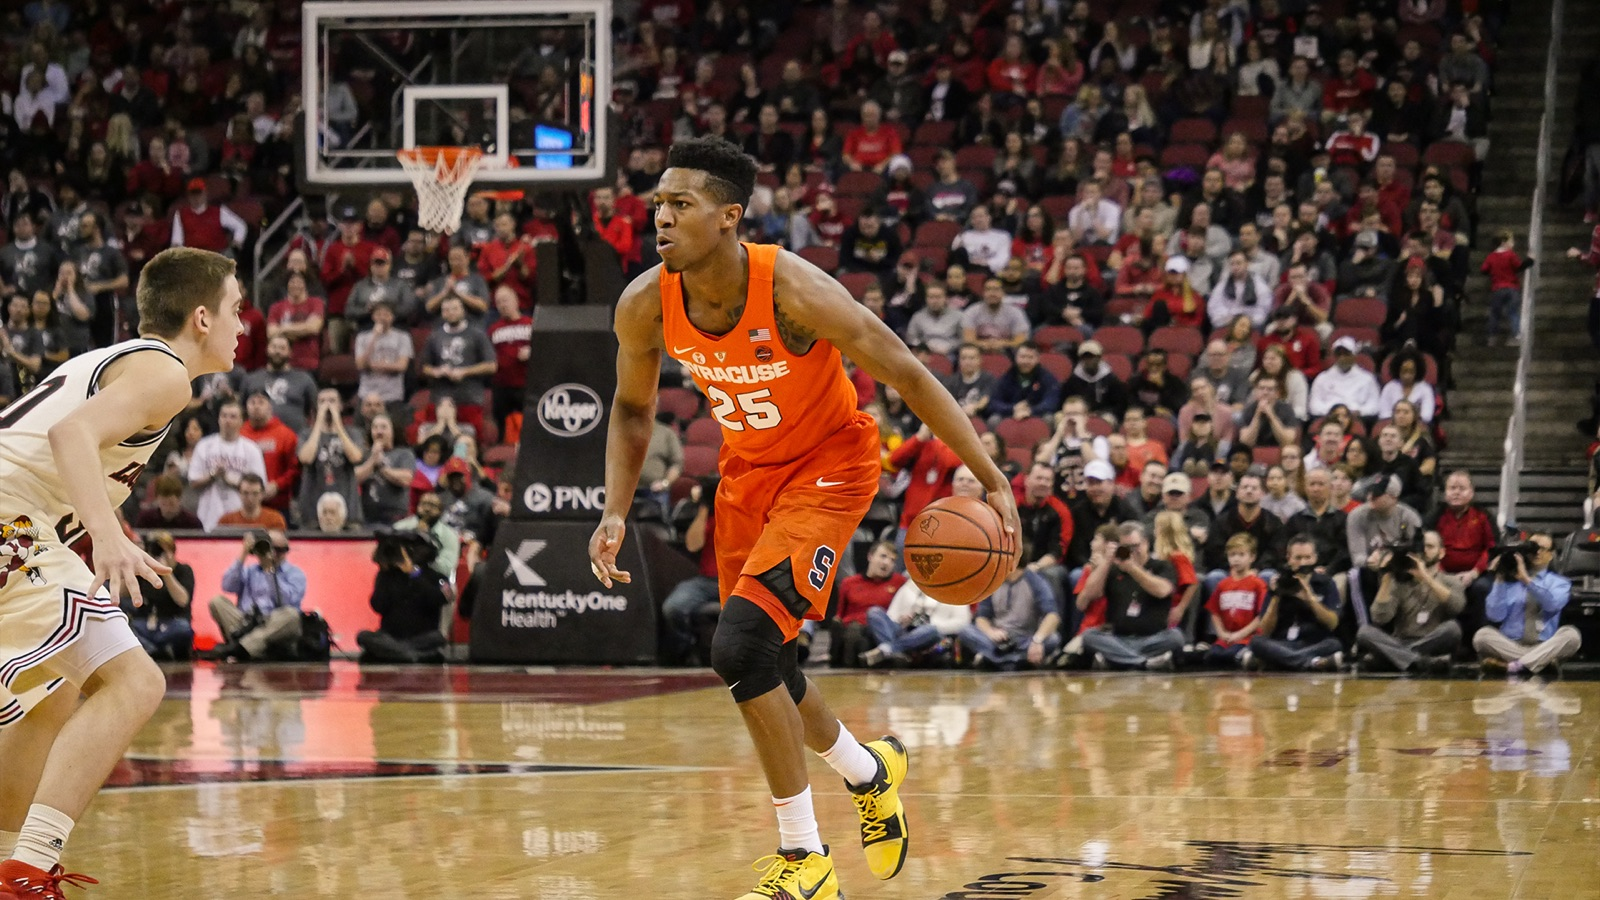 Rematch With Wake Forest Set For Sunday Syracuse University Athletics